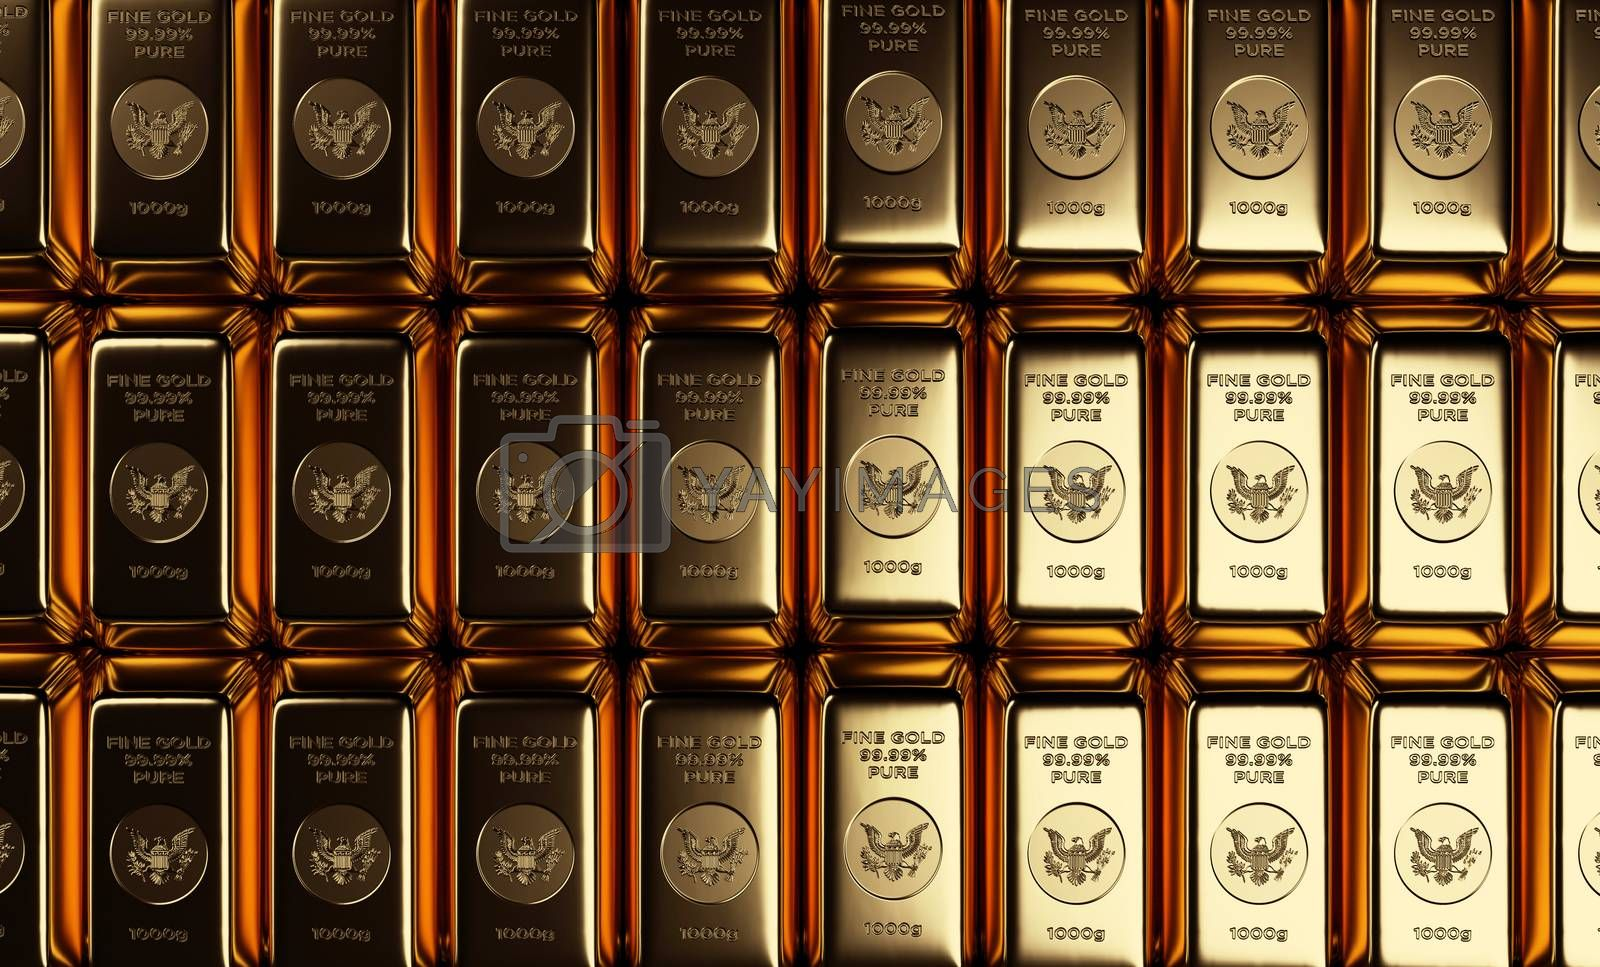 A straight overhead view of gold bars or bullion arranged in a grid of rows and columns